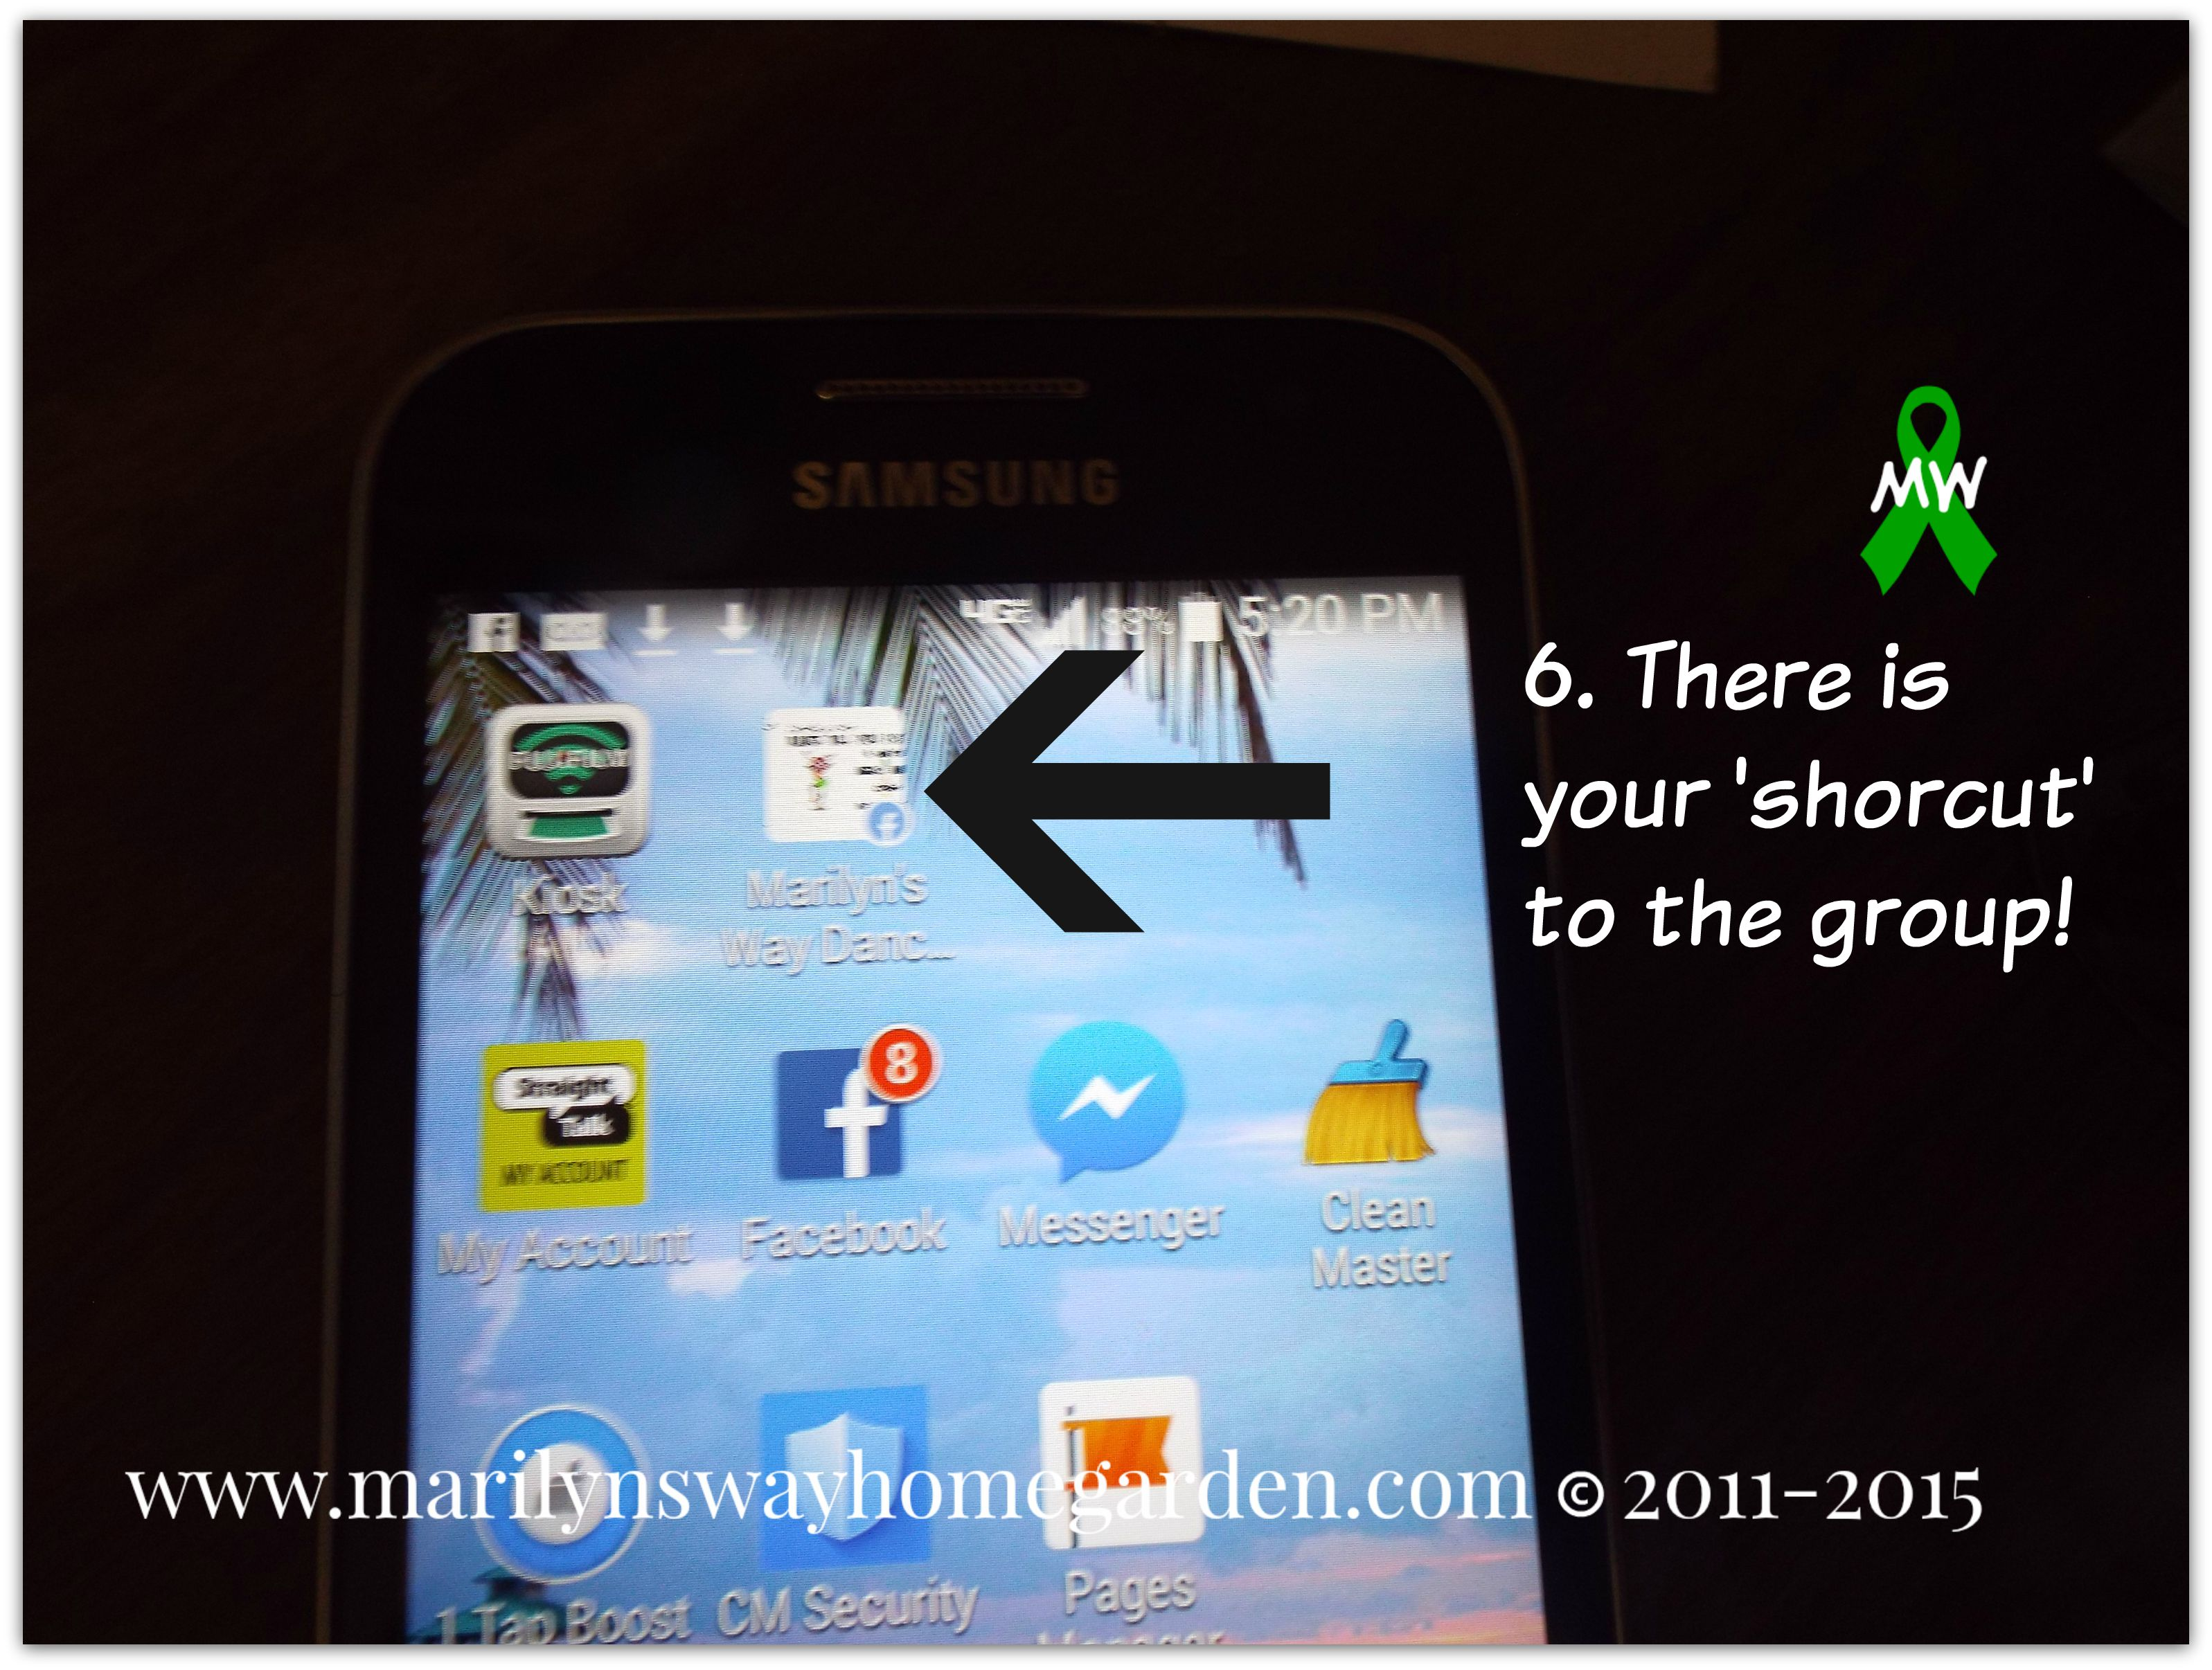 shortcut on phone 006mw